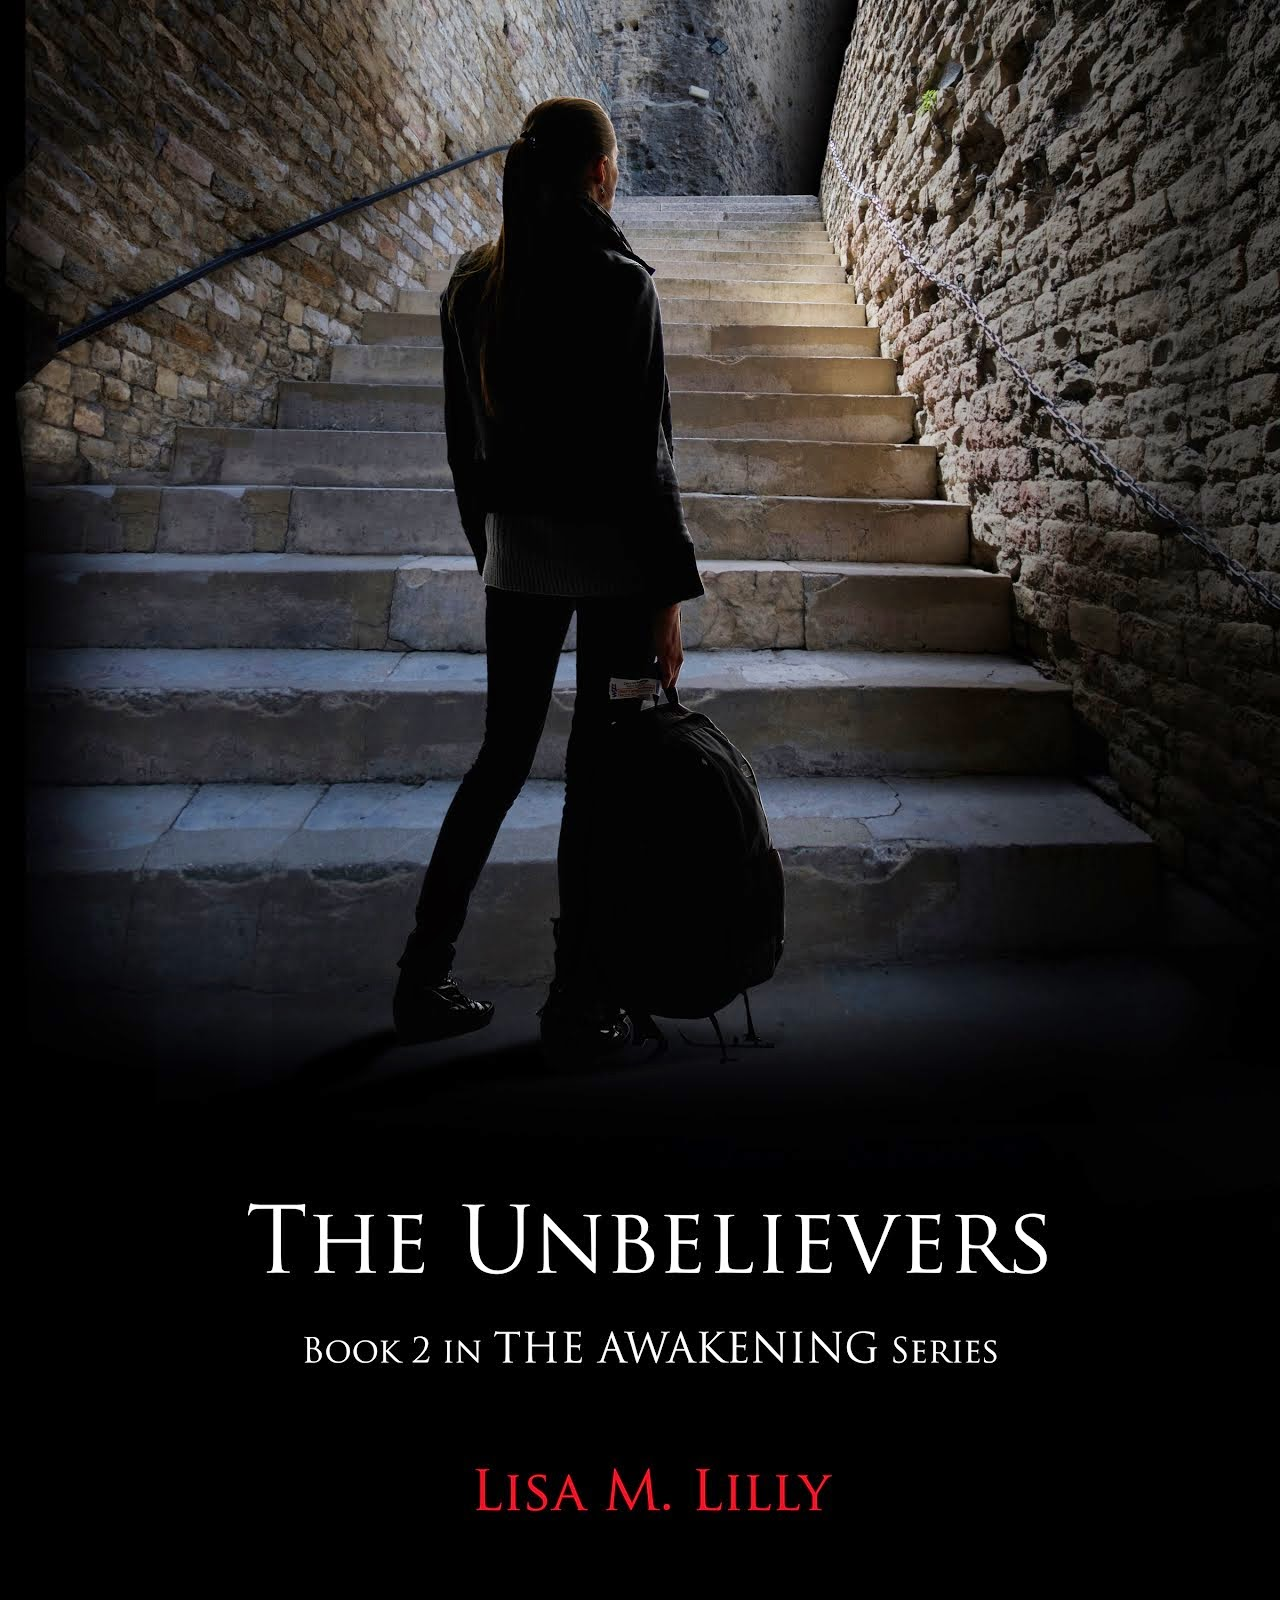 The Unbelievers, Book 2 in The Awakening Series